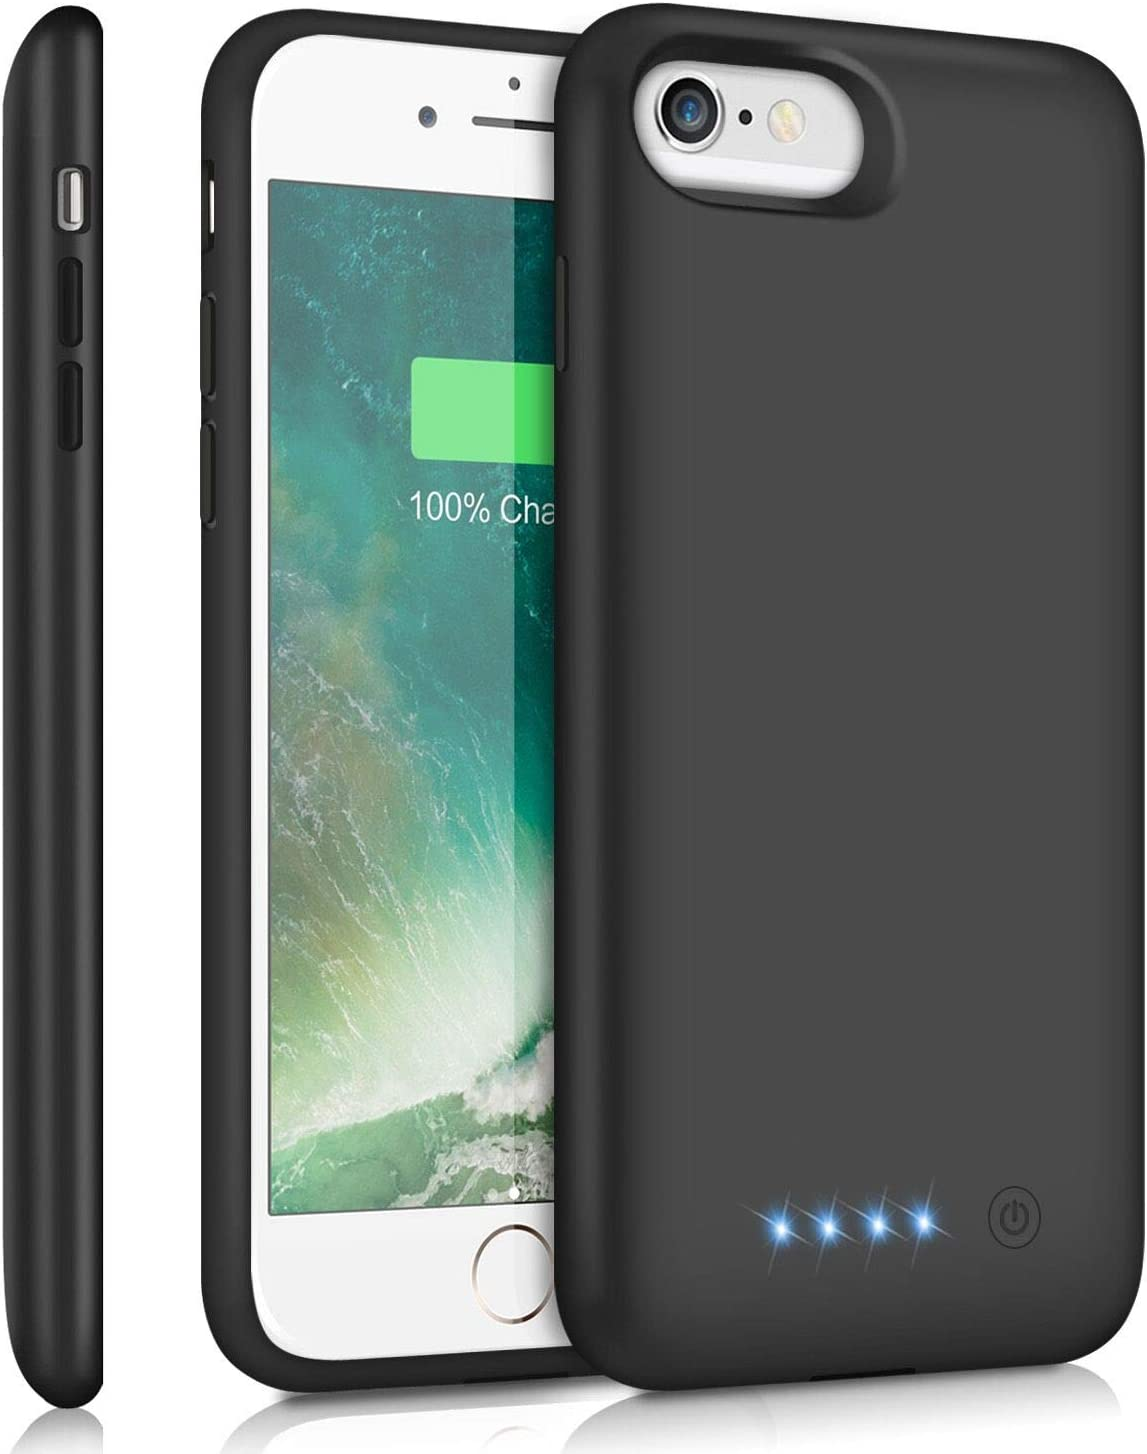 ABOE Battery Case for iPhone 8/7/6s/6/SE(2020), [6000mAh] Upgraded Charging Case Rechargeable Battery Pack for iPhone 8/7 Portable Charger case for iPhone 6S/6 /SE(2020)(4.7 inch)-[Black]